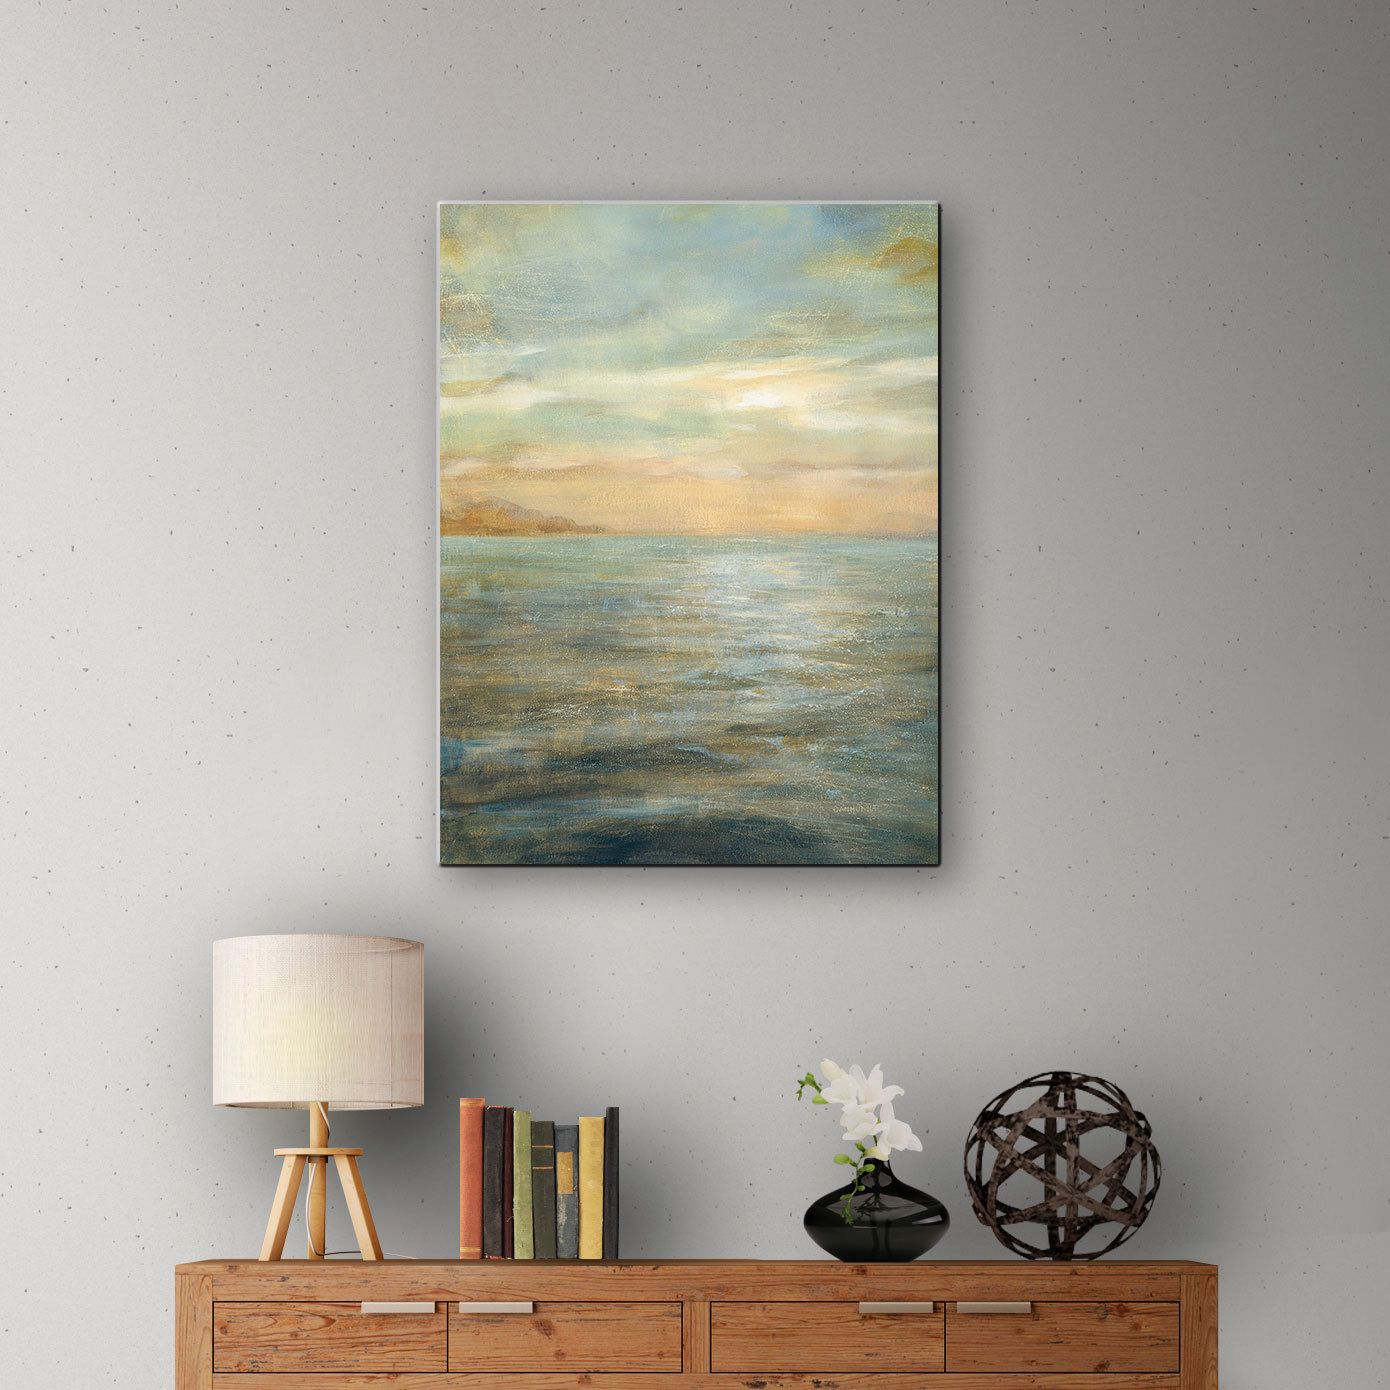 Artwall danhui naius serene sea blue gallery wrapped canvas